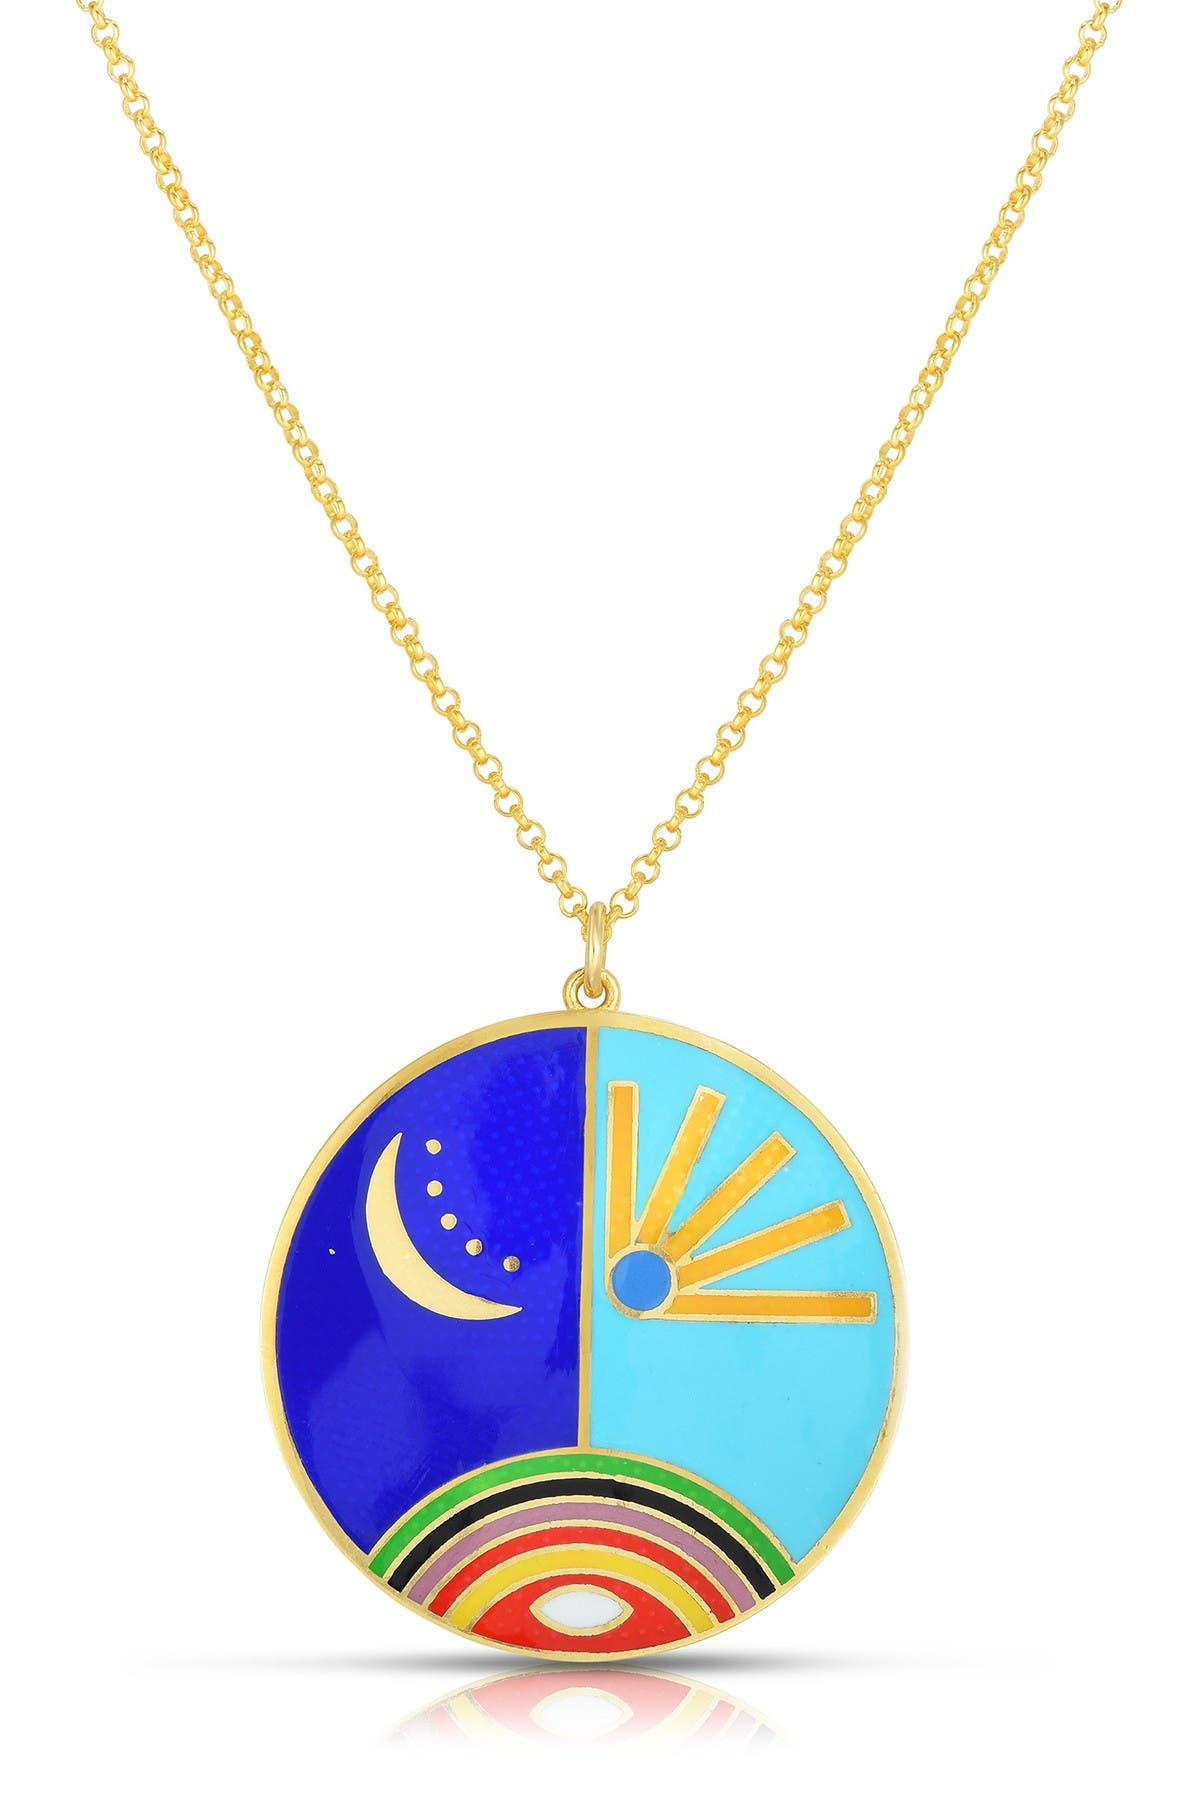 Sphera Milano 18K Gold Plated Sterling Silver Pendant Necklace at Nordstrom Rack